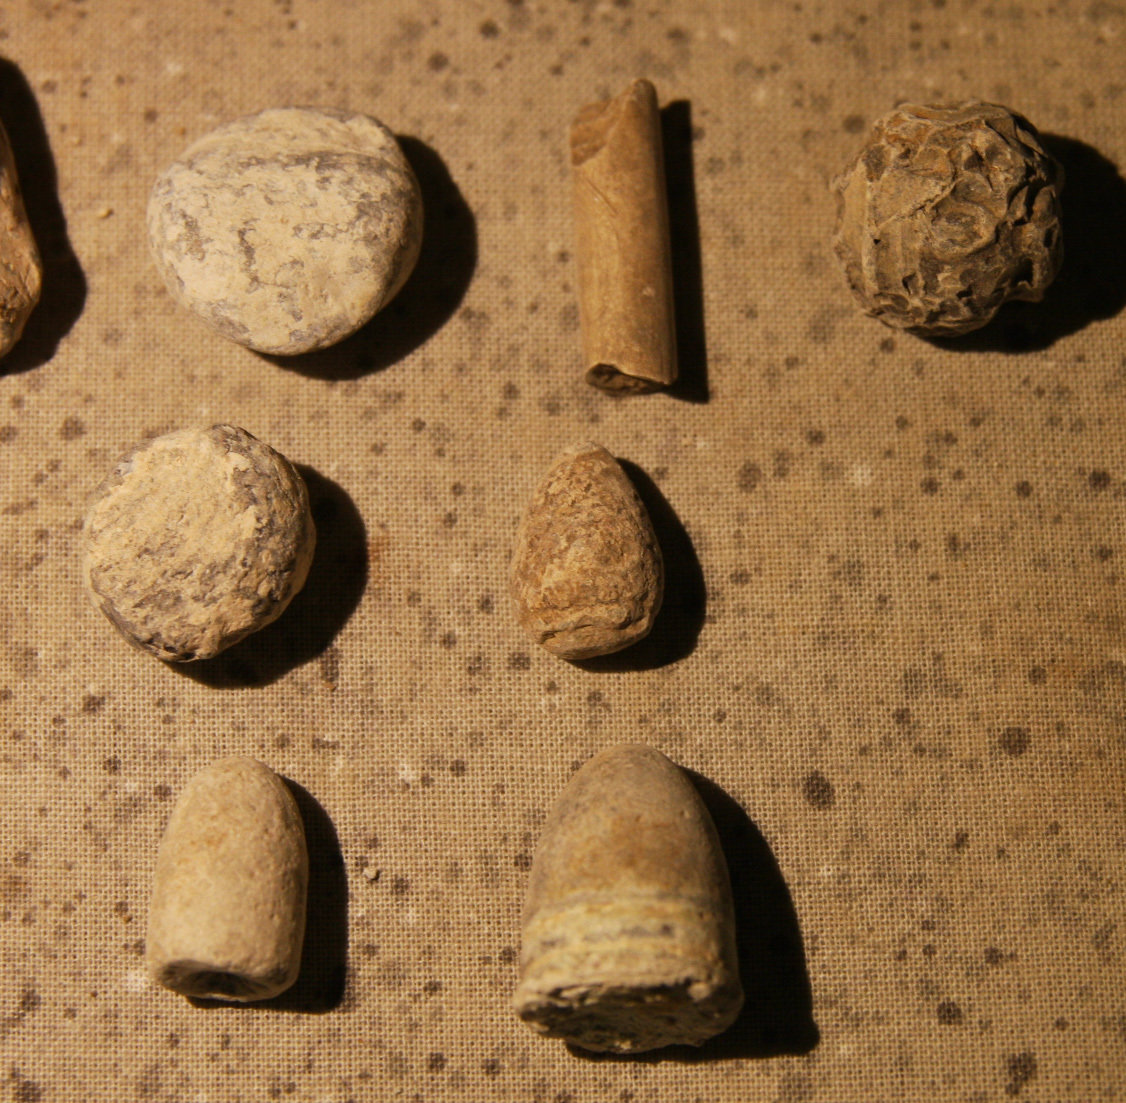 JUST ADDED ON 6/13 - HENRY DEEKS COLLECTION - 24 Bullets Including with Teeth Marks, Enfield, Pulled, Mushroomed, Pistol